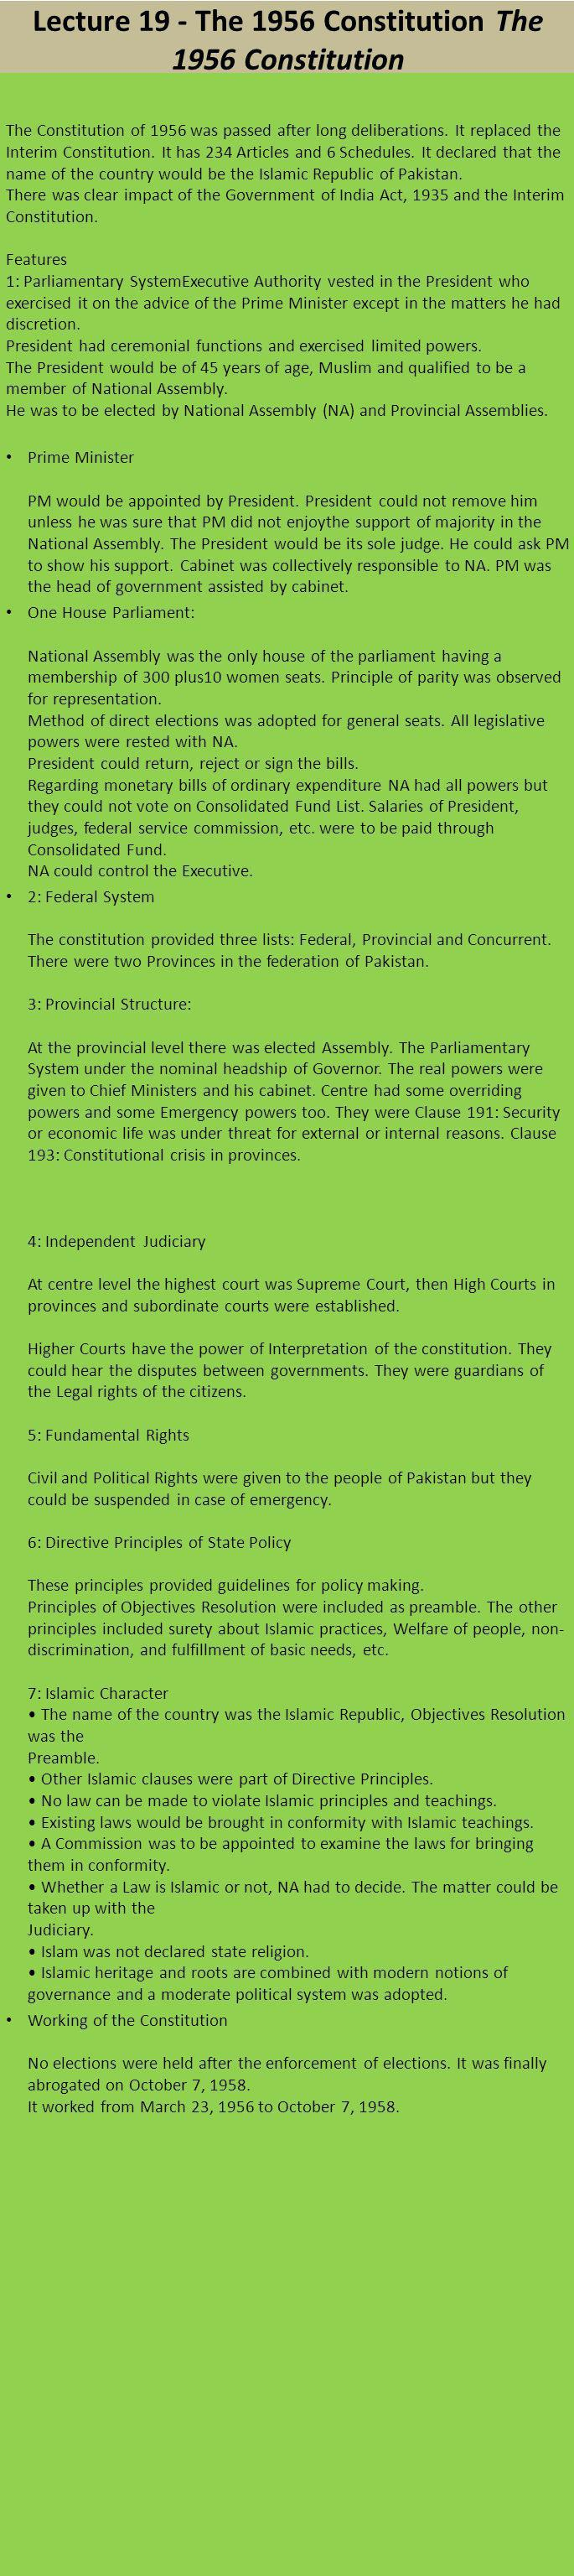 Lecture 19 - The 1956 Constitution The 1956 Constitution The Constitution of 1956 was passed after long deliberations. It replaced the Interim Constit